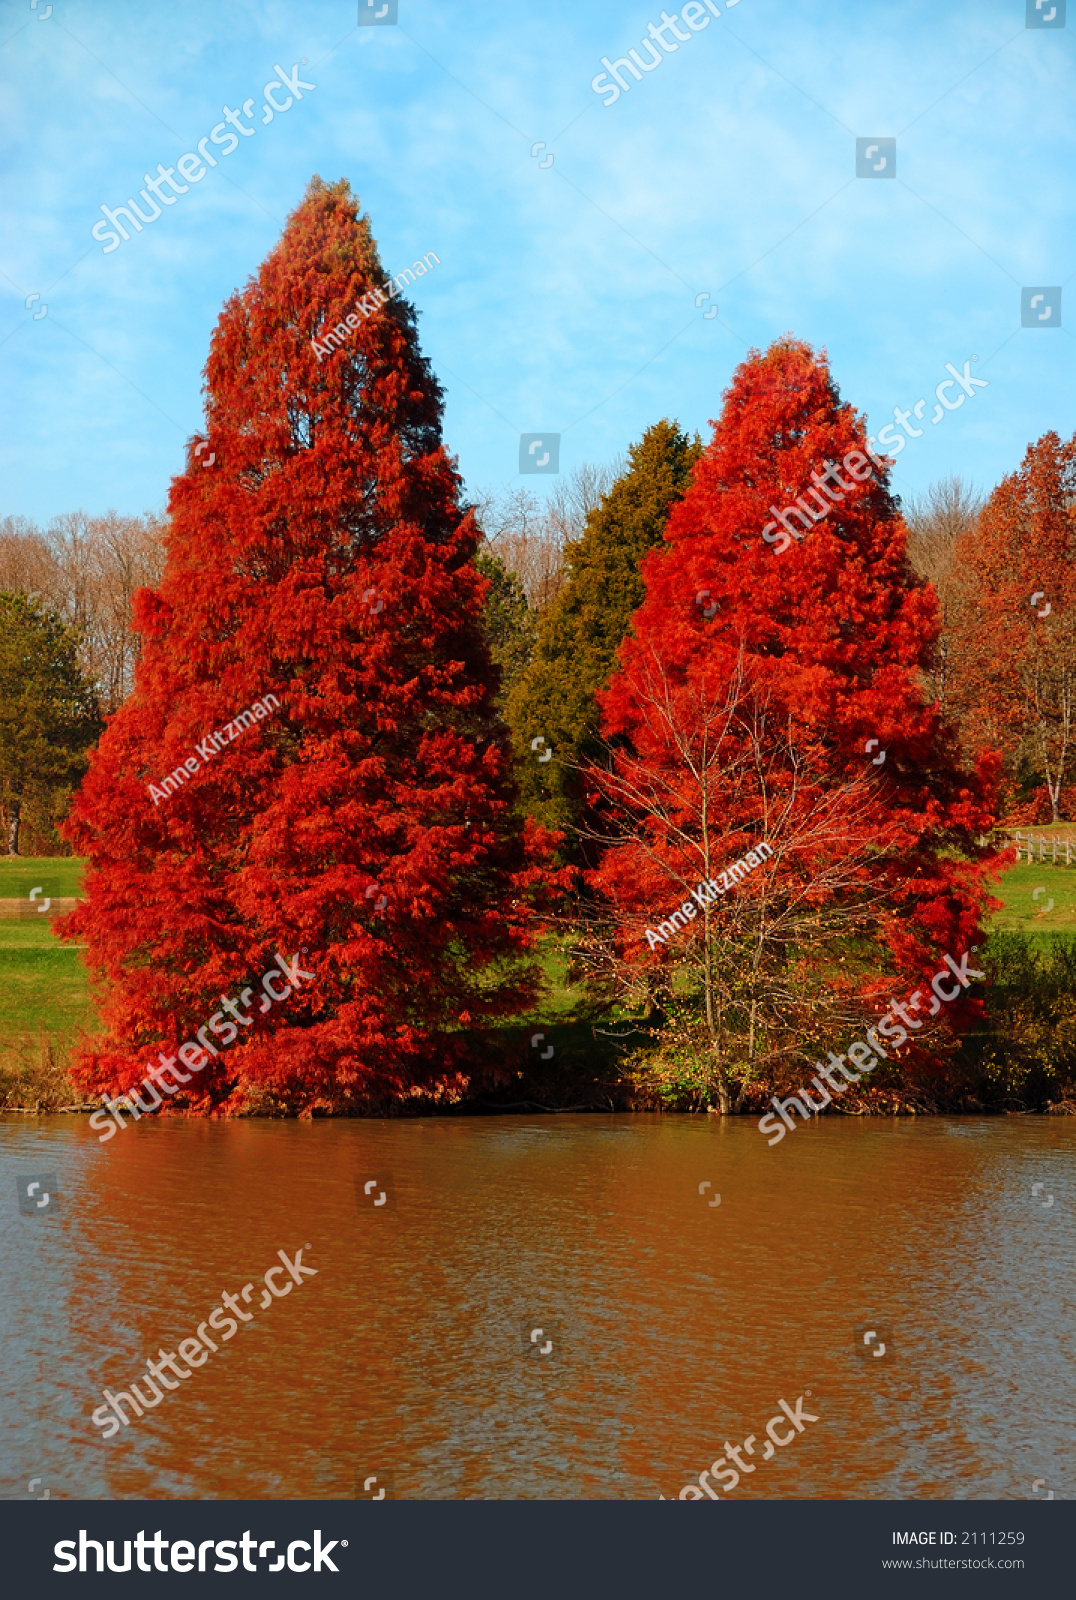 Free Fall Tree Wallpaper Red Pines Two Pine Trees Red Stock Photo 2111259